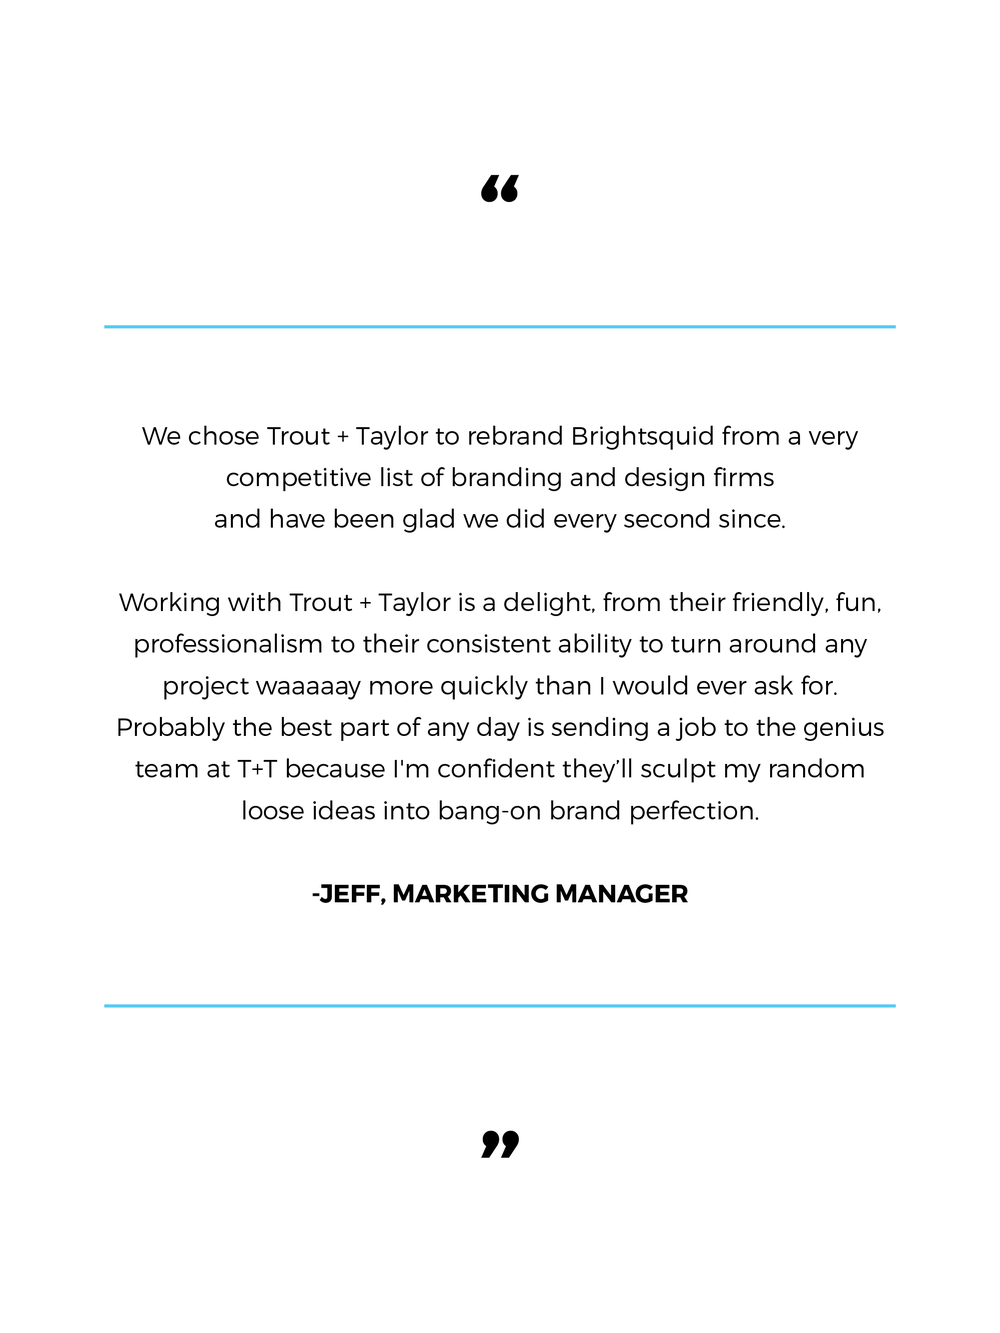 Brightsquid Testimonial | Trout + Taylor www.troutandtaylor.com